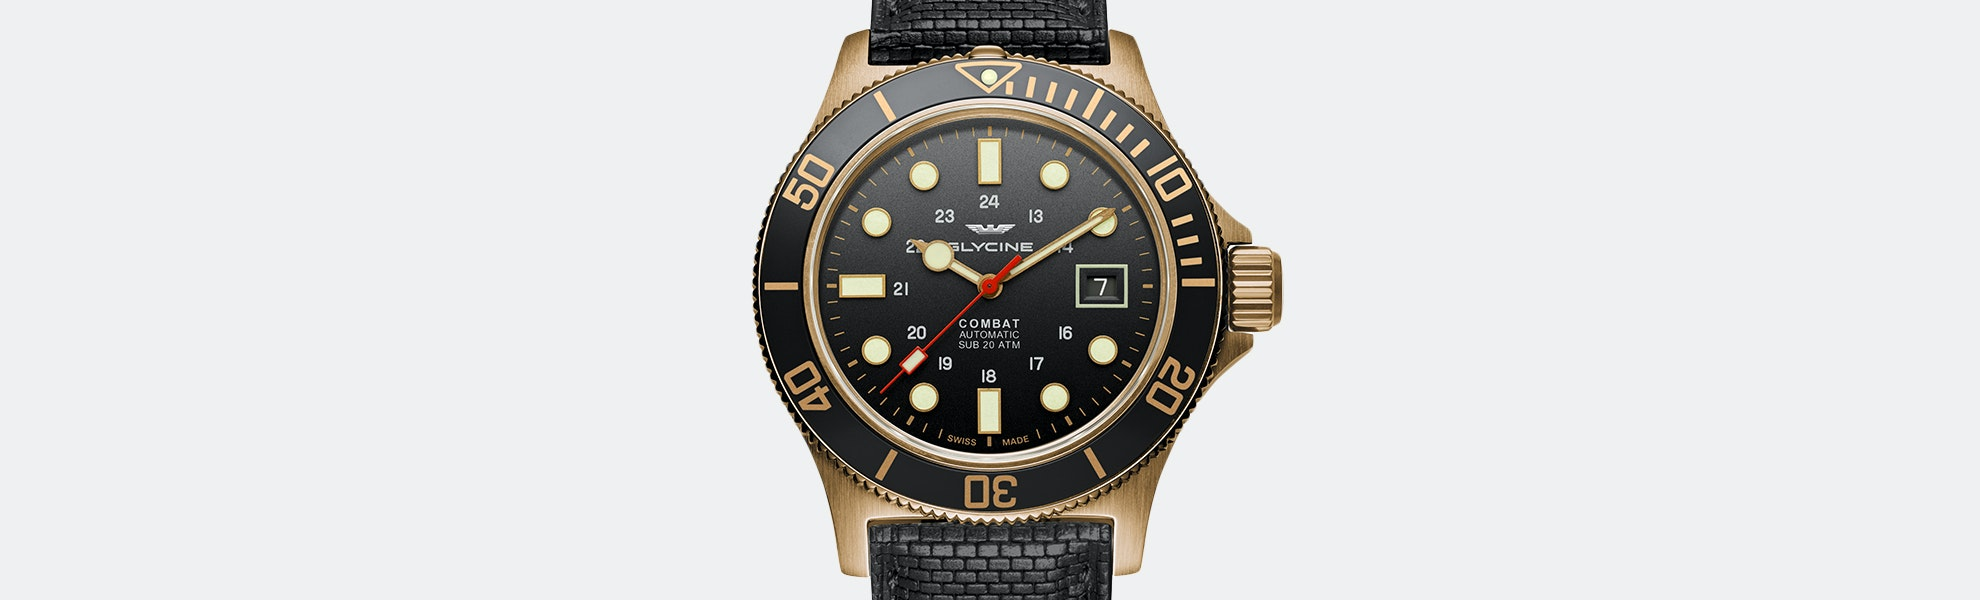 Glycine Combat Sub Bronze Automatic Watch